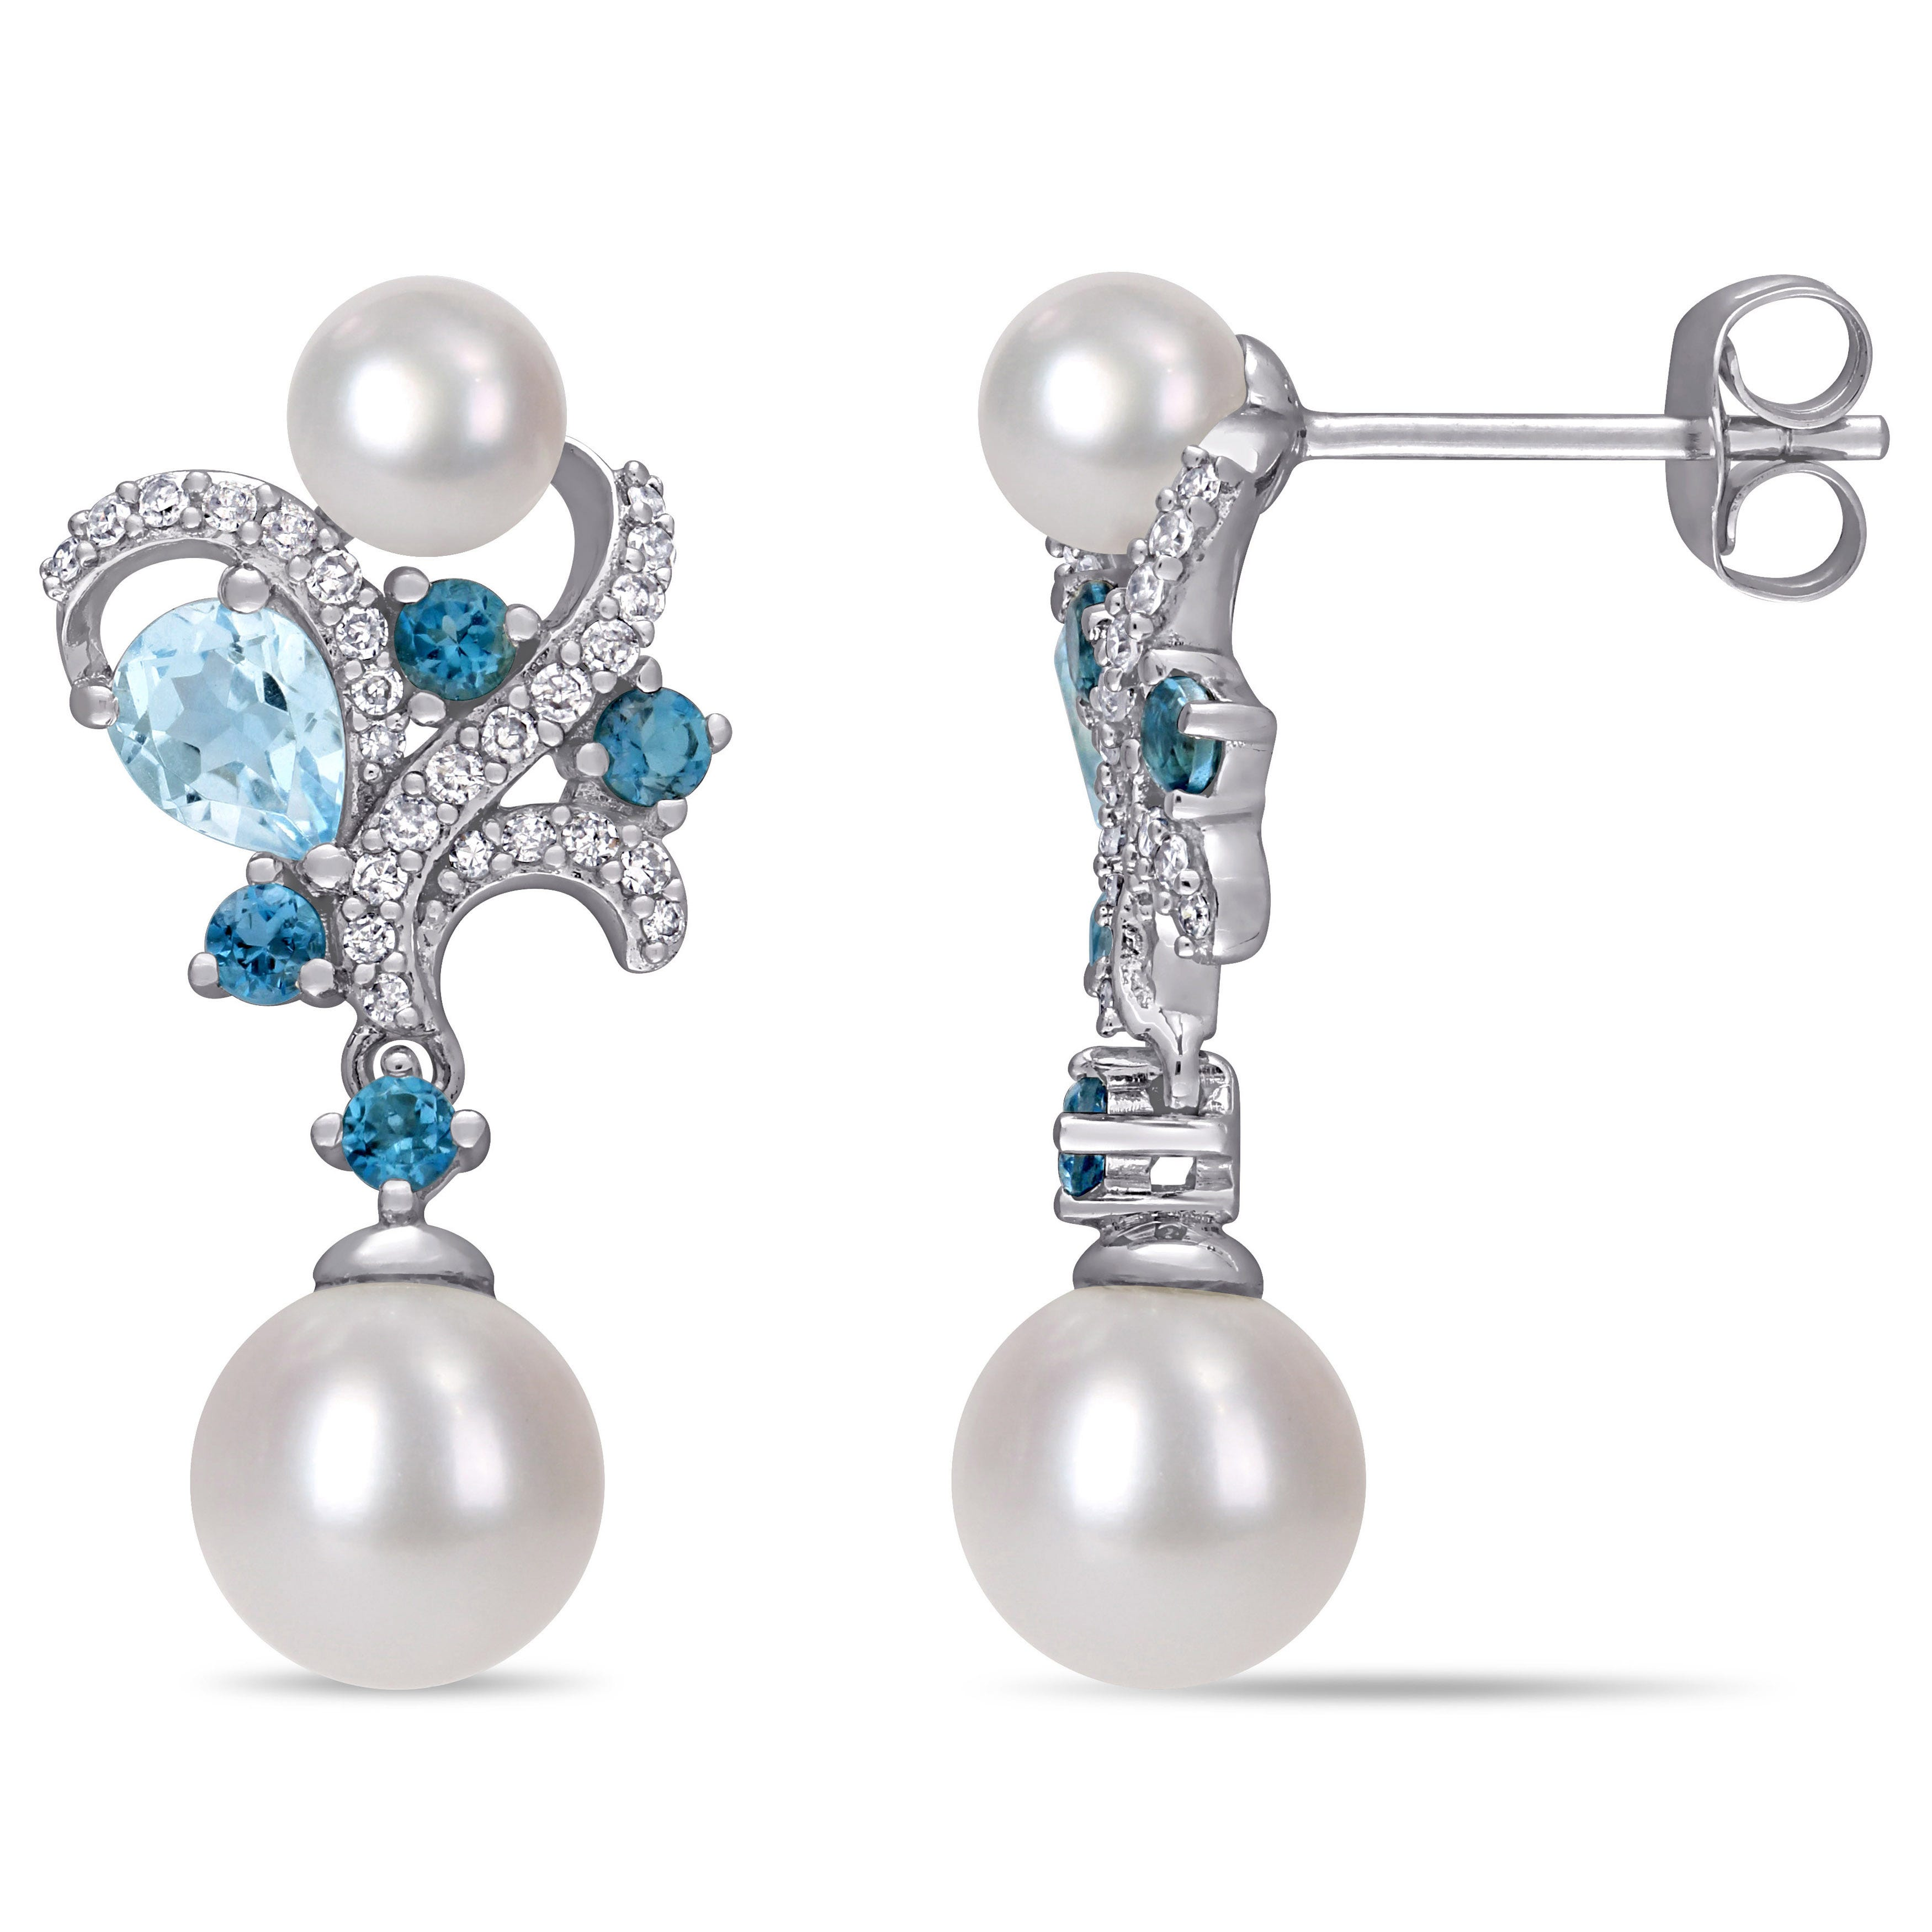 Diamond, London Blue Topaz & Sky Blue Topaz w/ Freshwater Pearl Cluster Drop Earrings in 10k White Gold